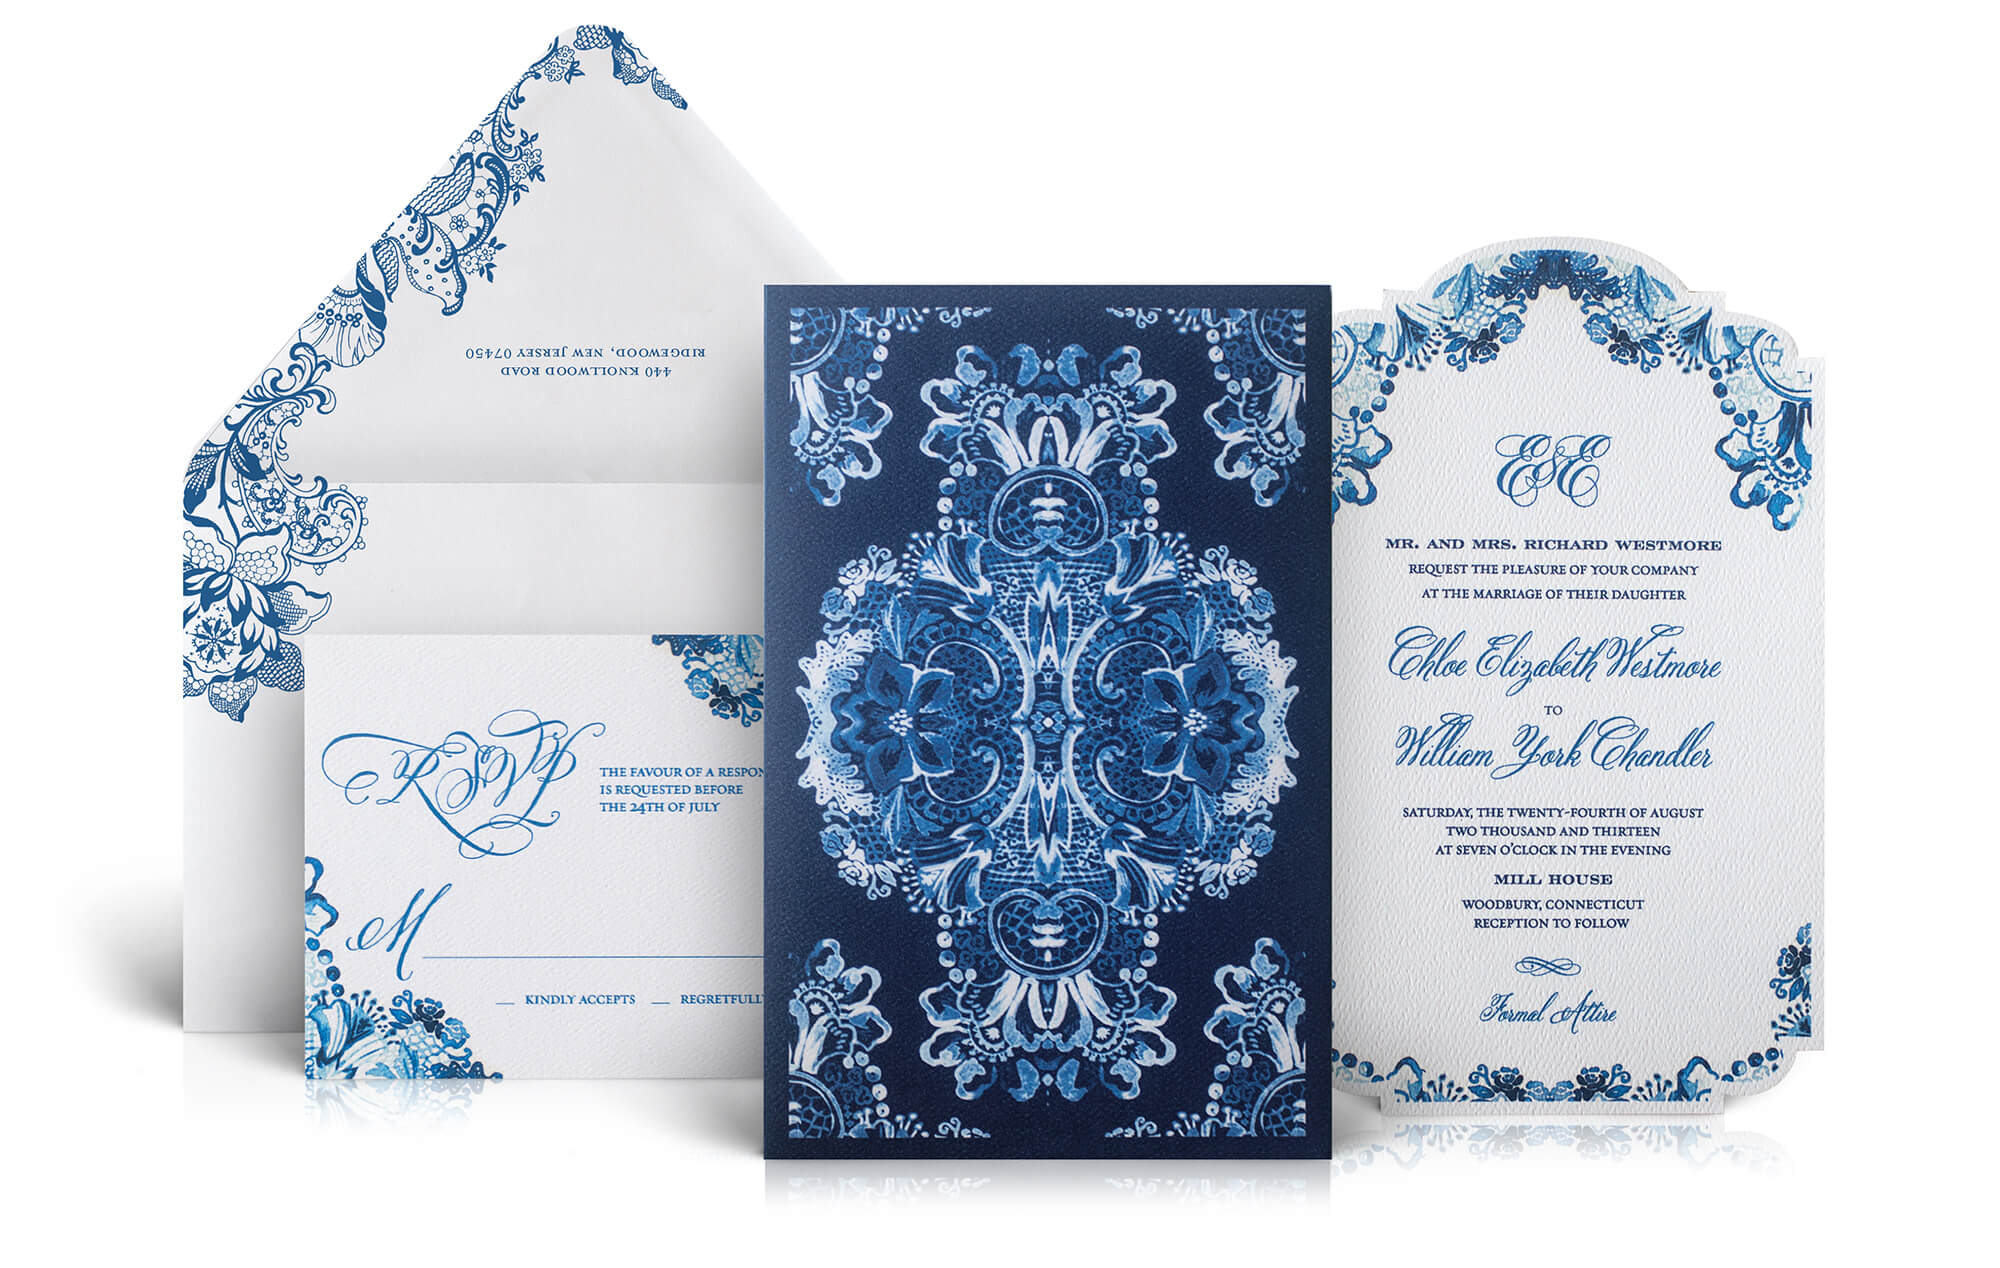 Watercolor floral and lace wedding invitation